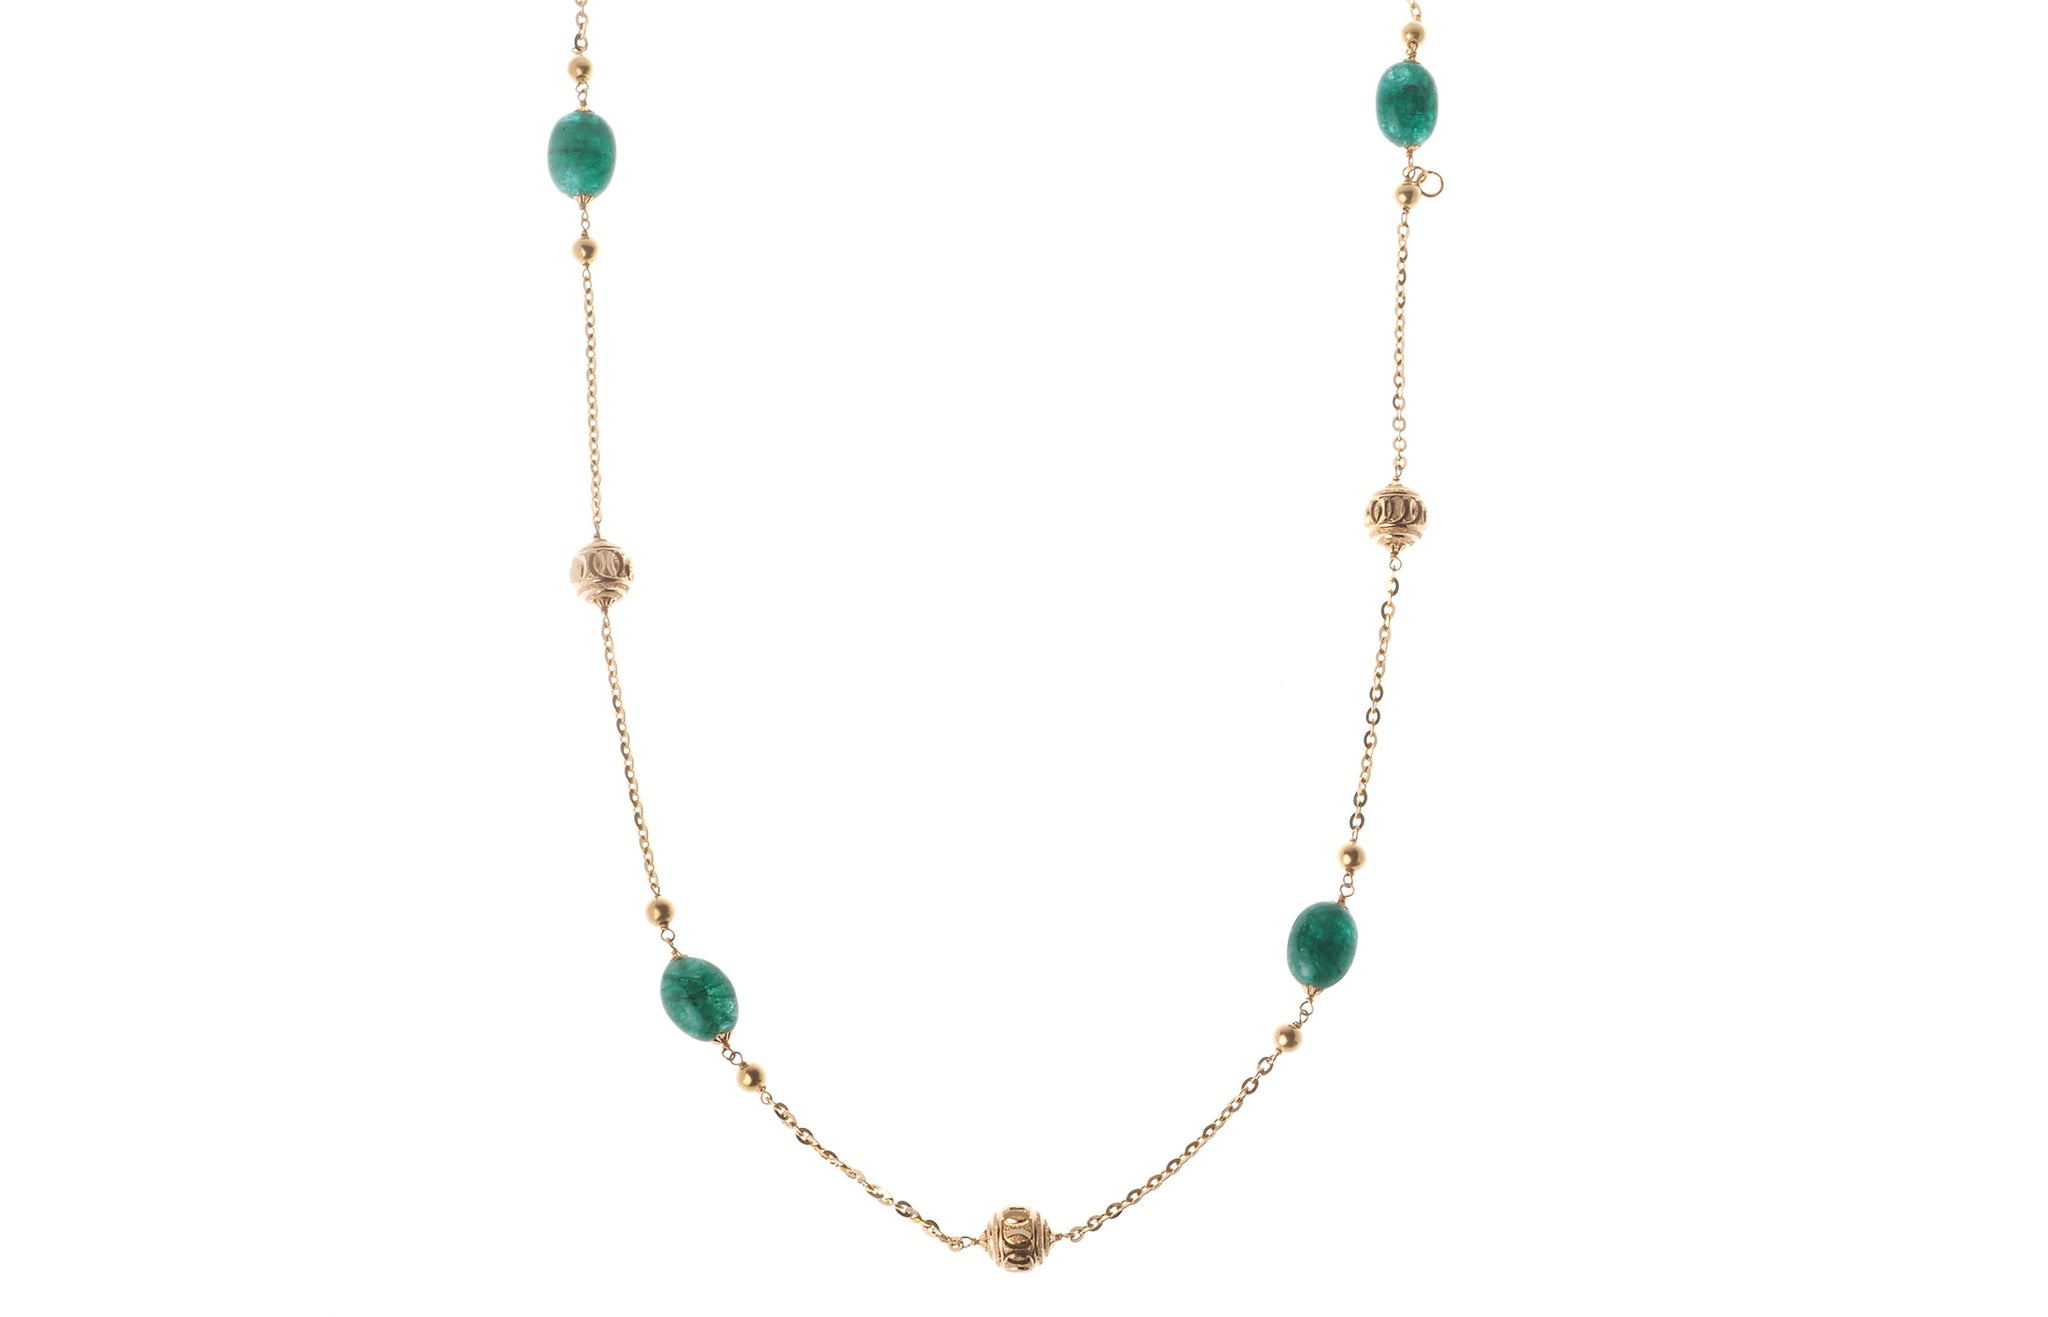 22ct Gold Antiquated Look Necklace with diamond cut design and treated Emeralds (GMS-X8219)